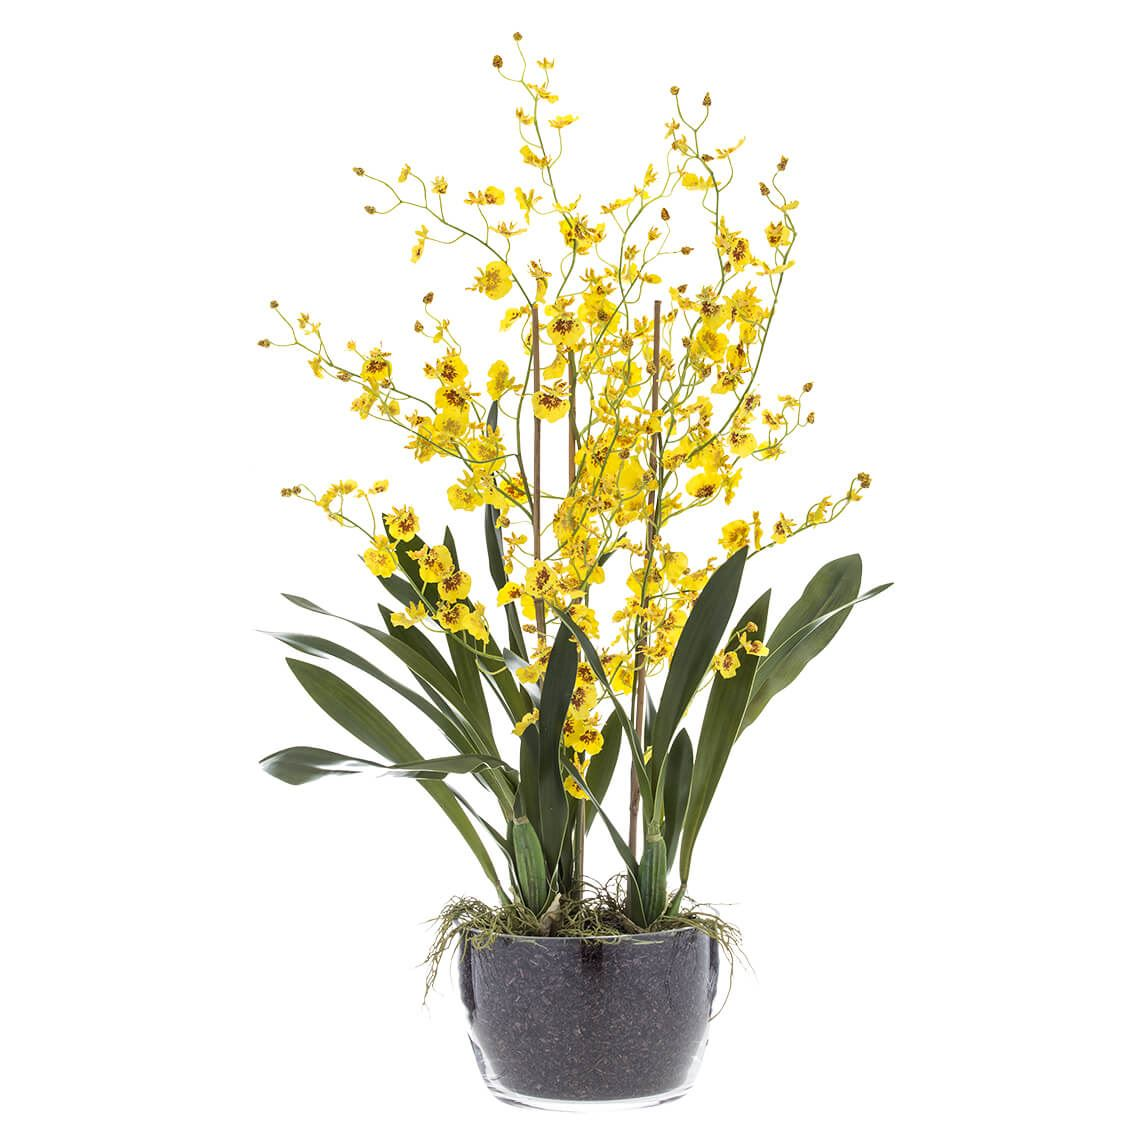 Dancing Lady Orchid Large Nz Only Size W 50cm x D 60cm x H 85cm in Yellow/Green Plastic/Glass Freedom by Freedom, a Plants for sale on Style Sourcebook